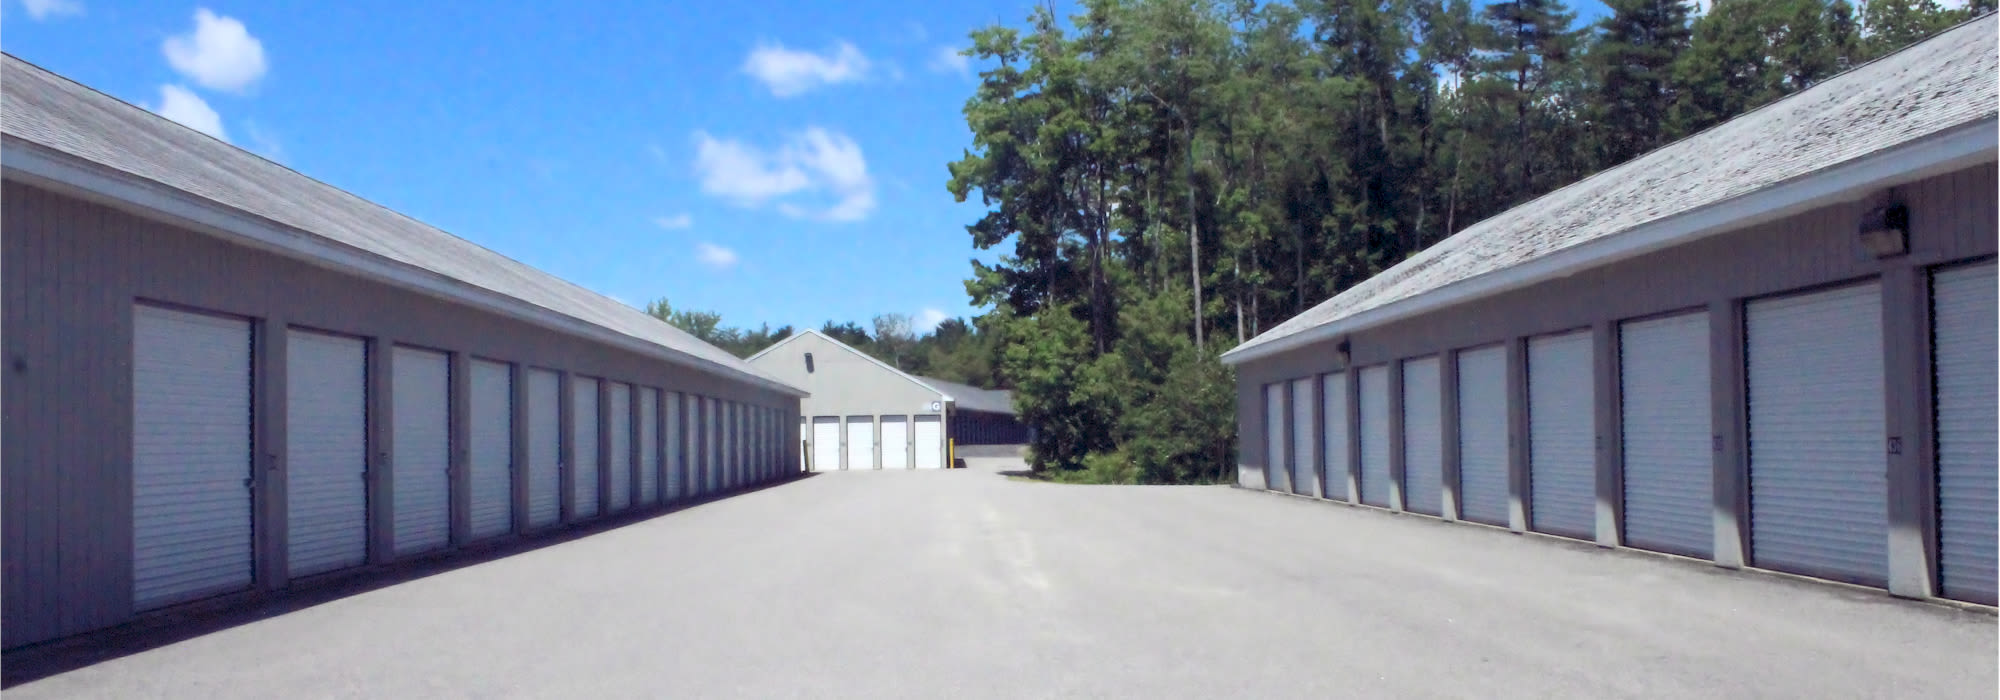 Prime Storage in Arundel, ME